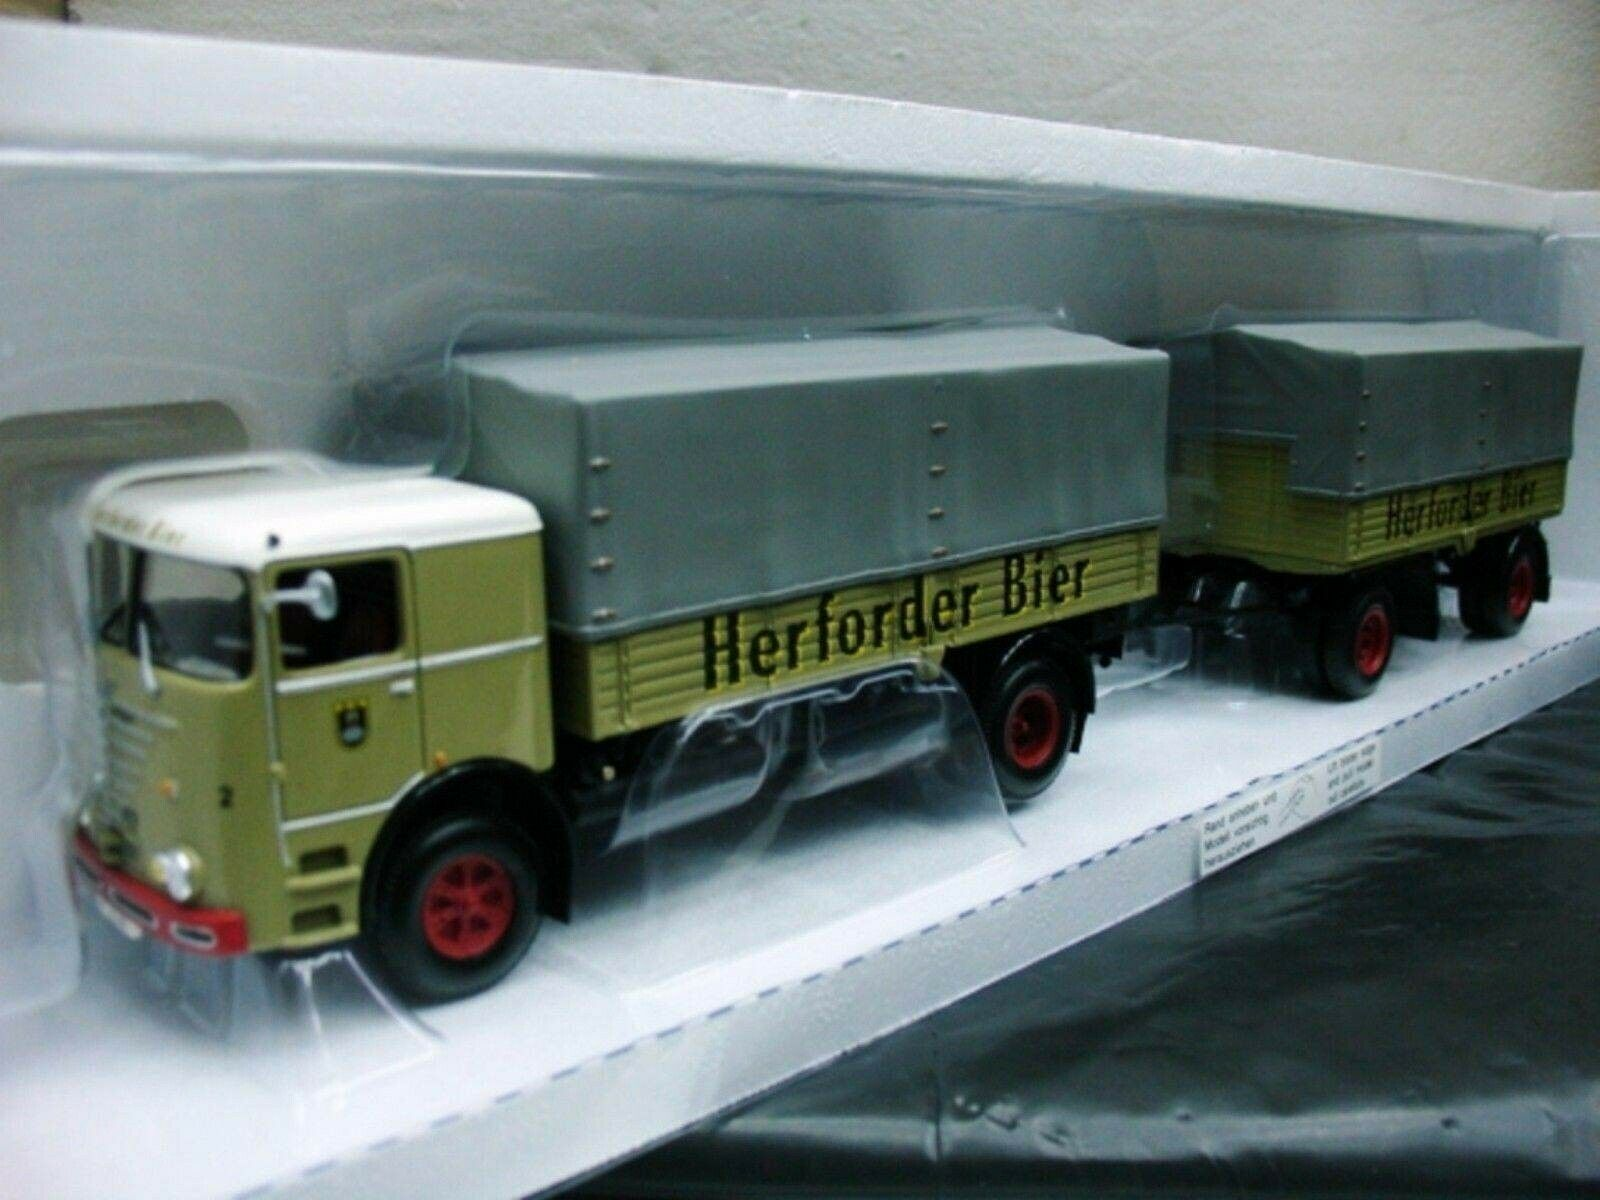 WOW EXTREMELY RARE Bussing Büssing LU11 16+Trailer Set Herforder 1 43 Minichamps